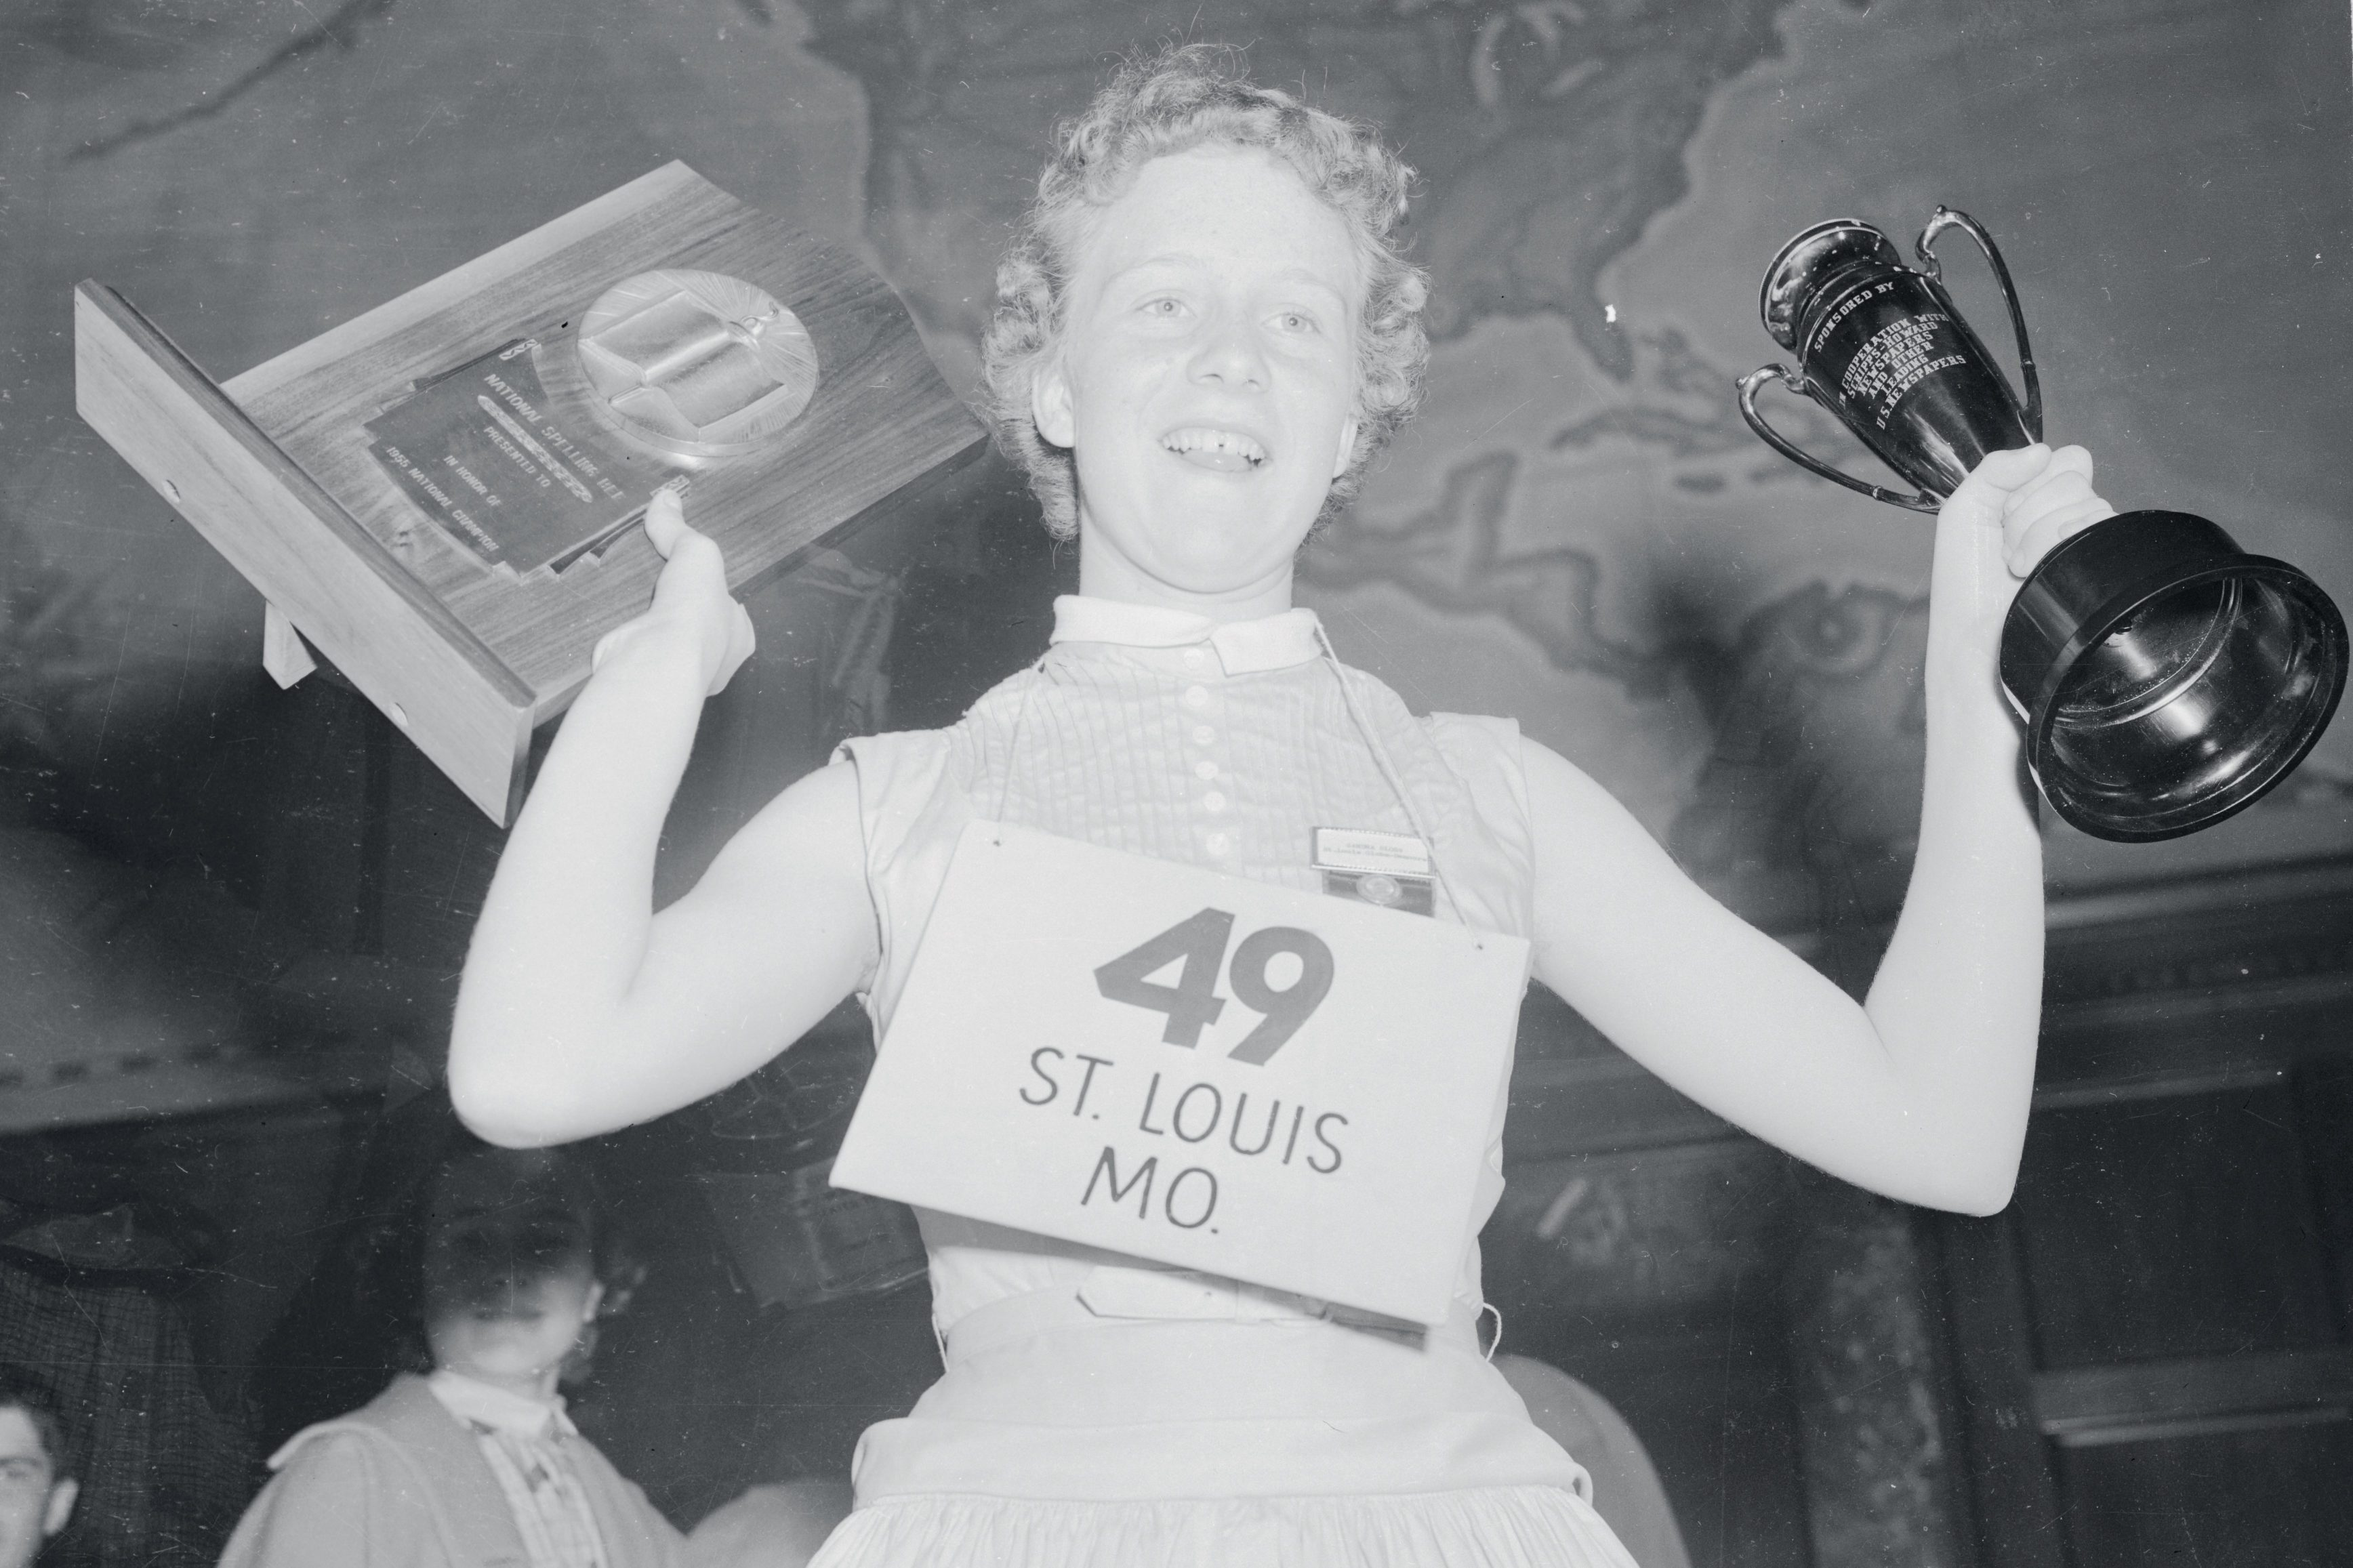 Girl Holding Trophy Cup and Plaque